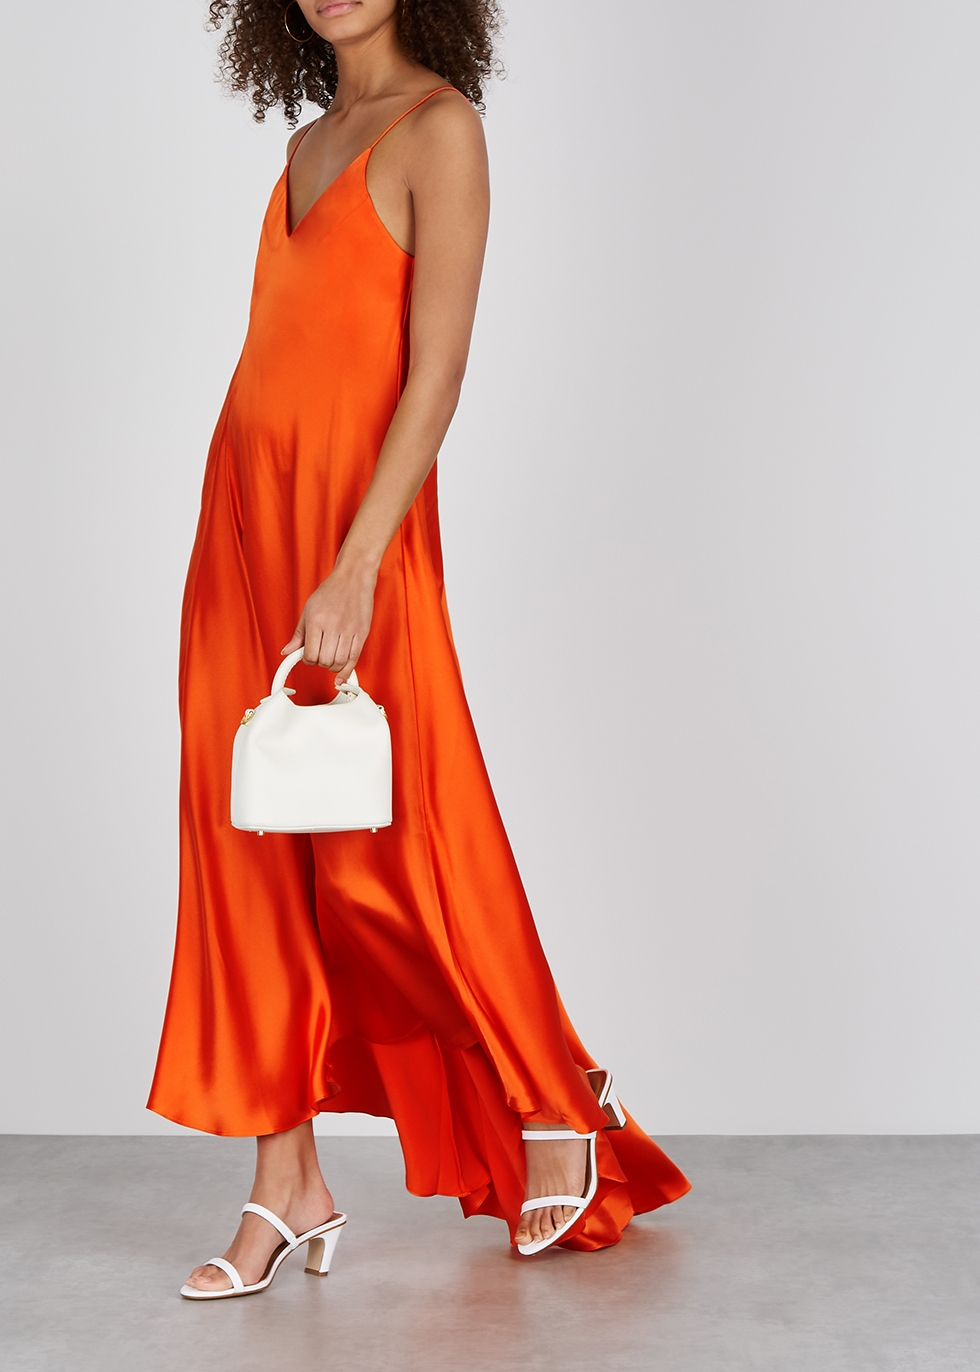 Orange silk maxi dress - Walk of Shame